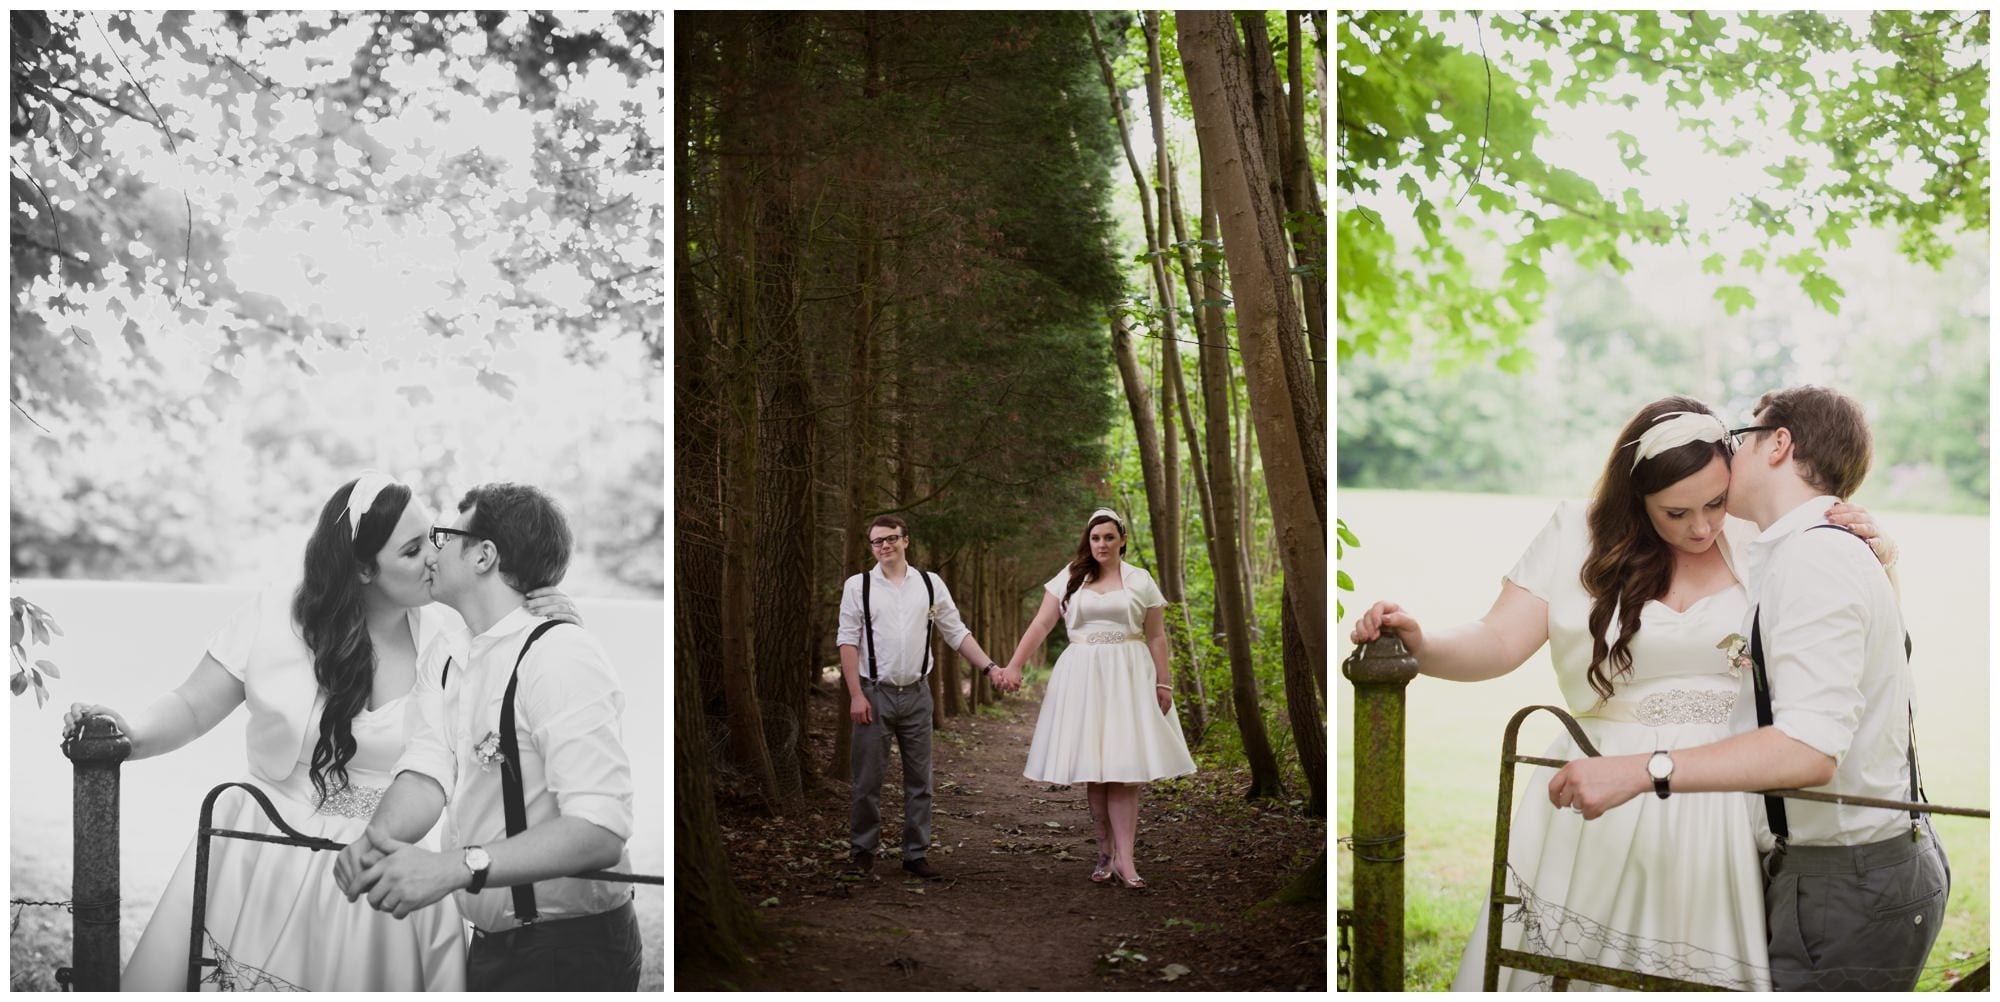 Couple portraits at The Old Vicarage